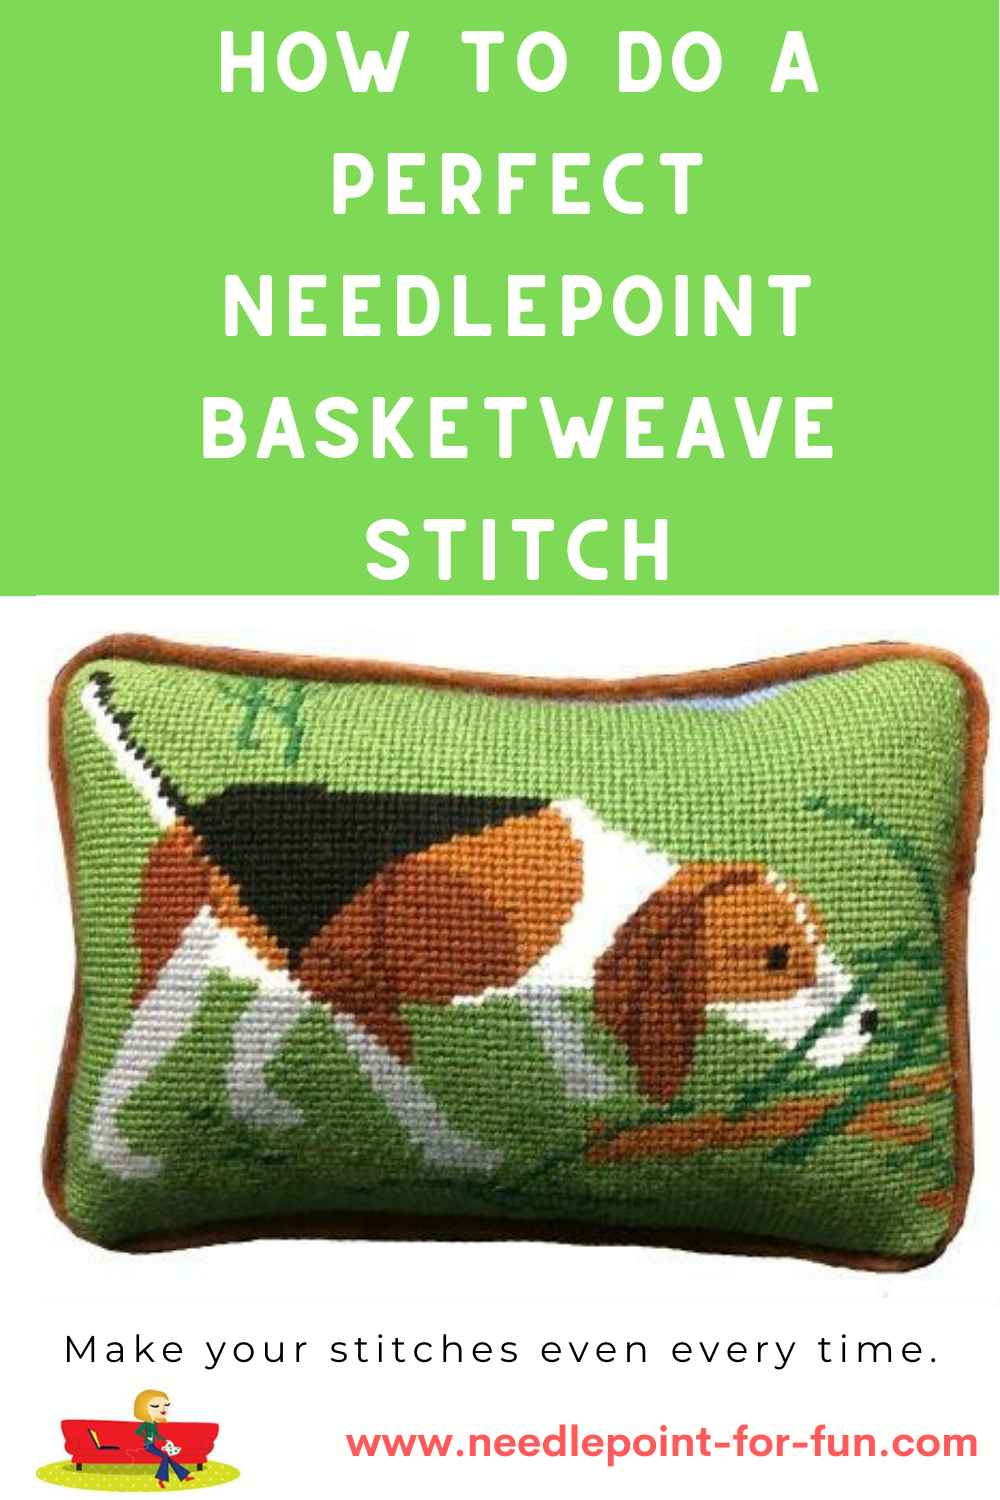 how to do a perfect needlepoint basketweave stitch